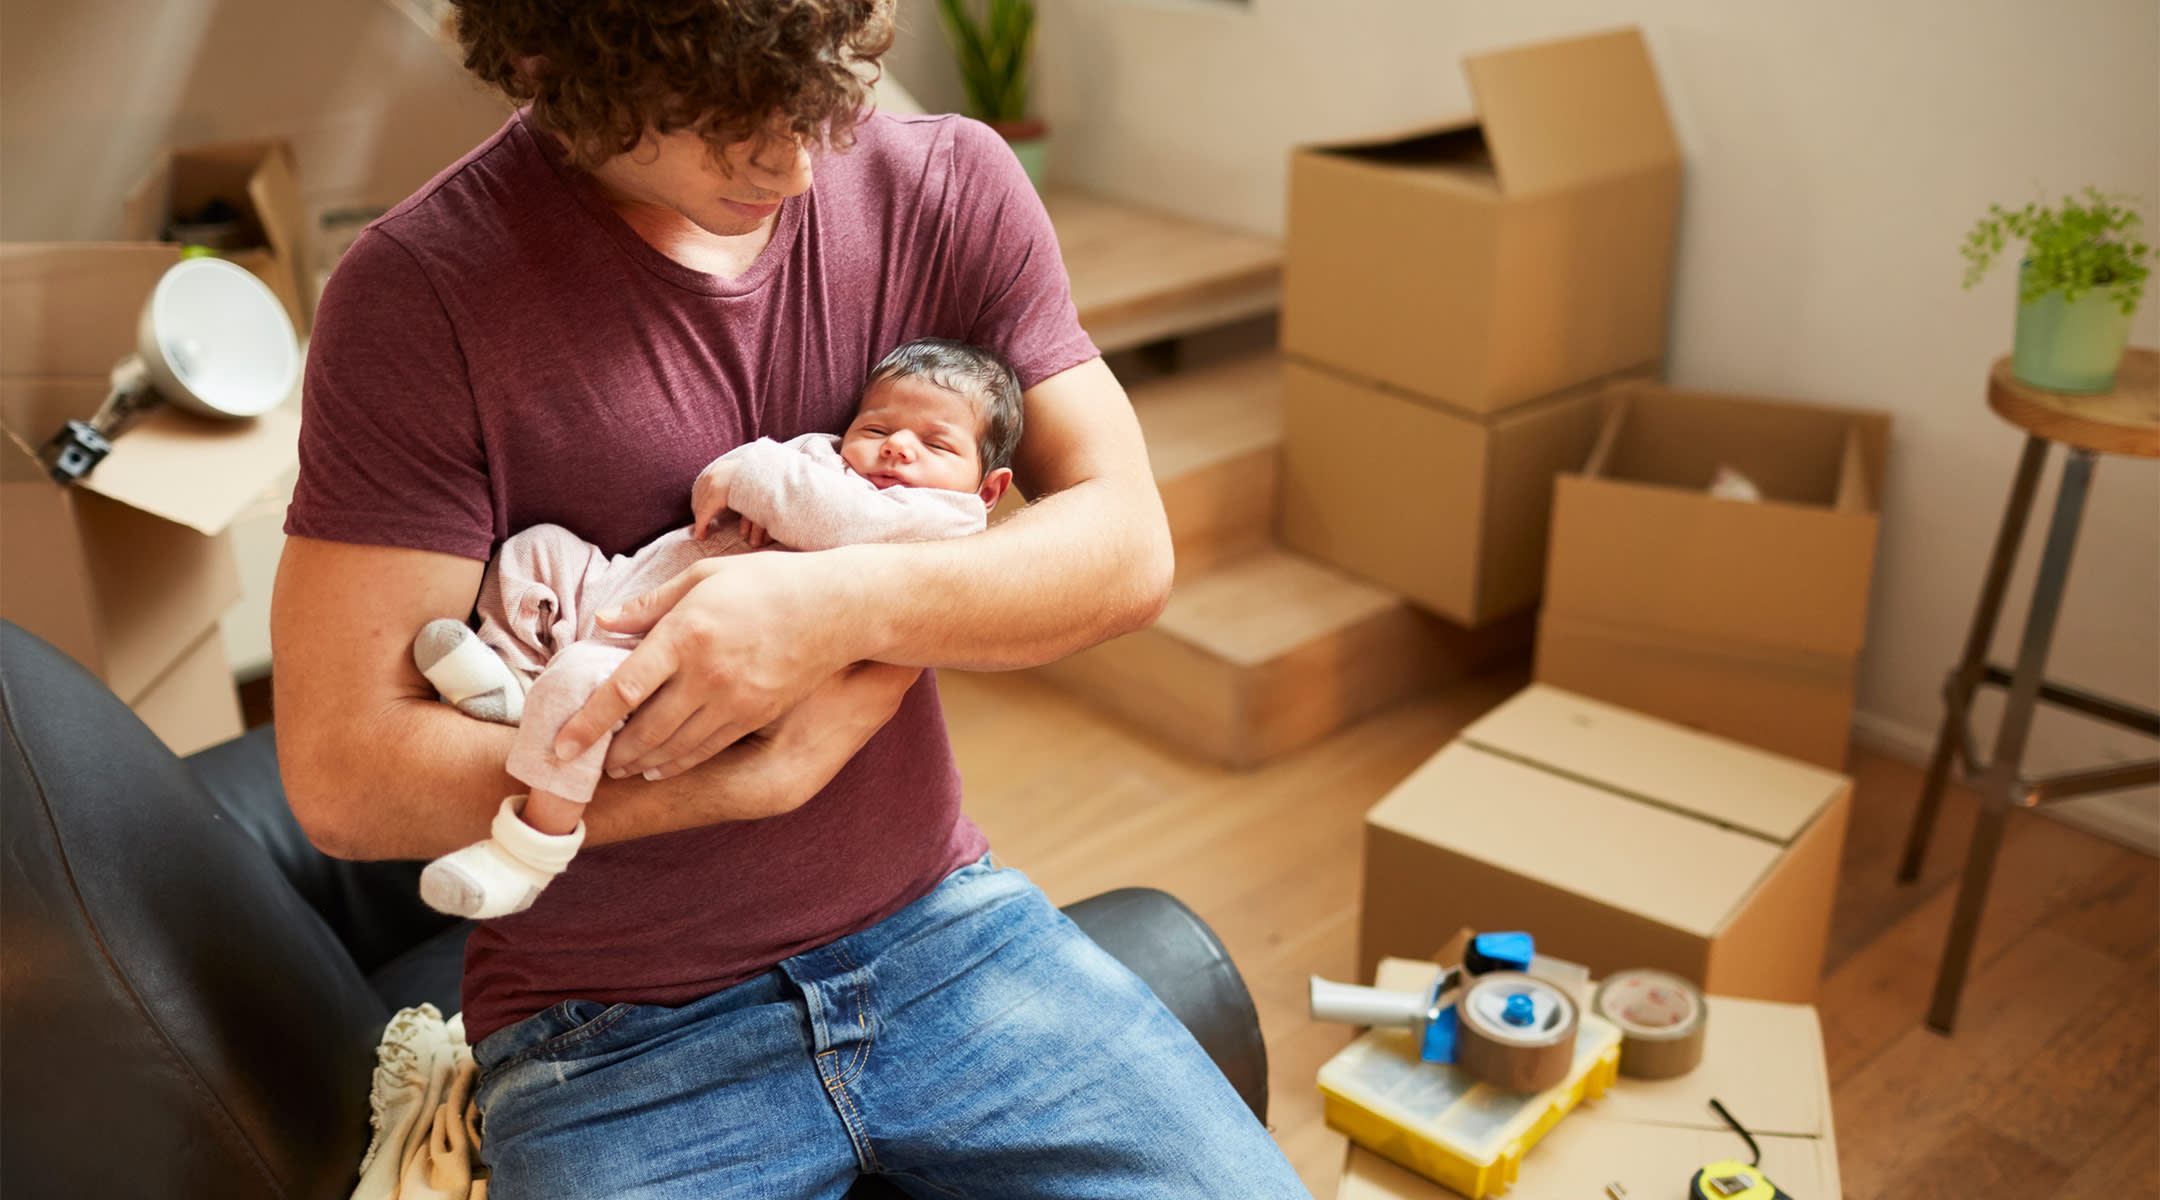 couple is forced to pack up their stuff and move after having a baby.